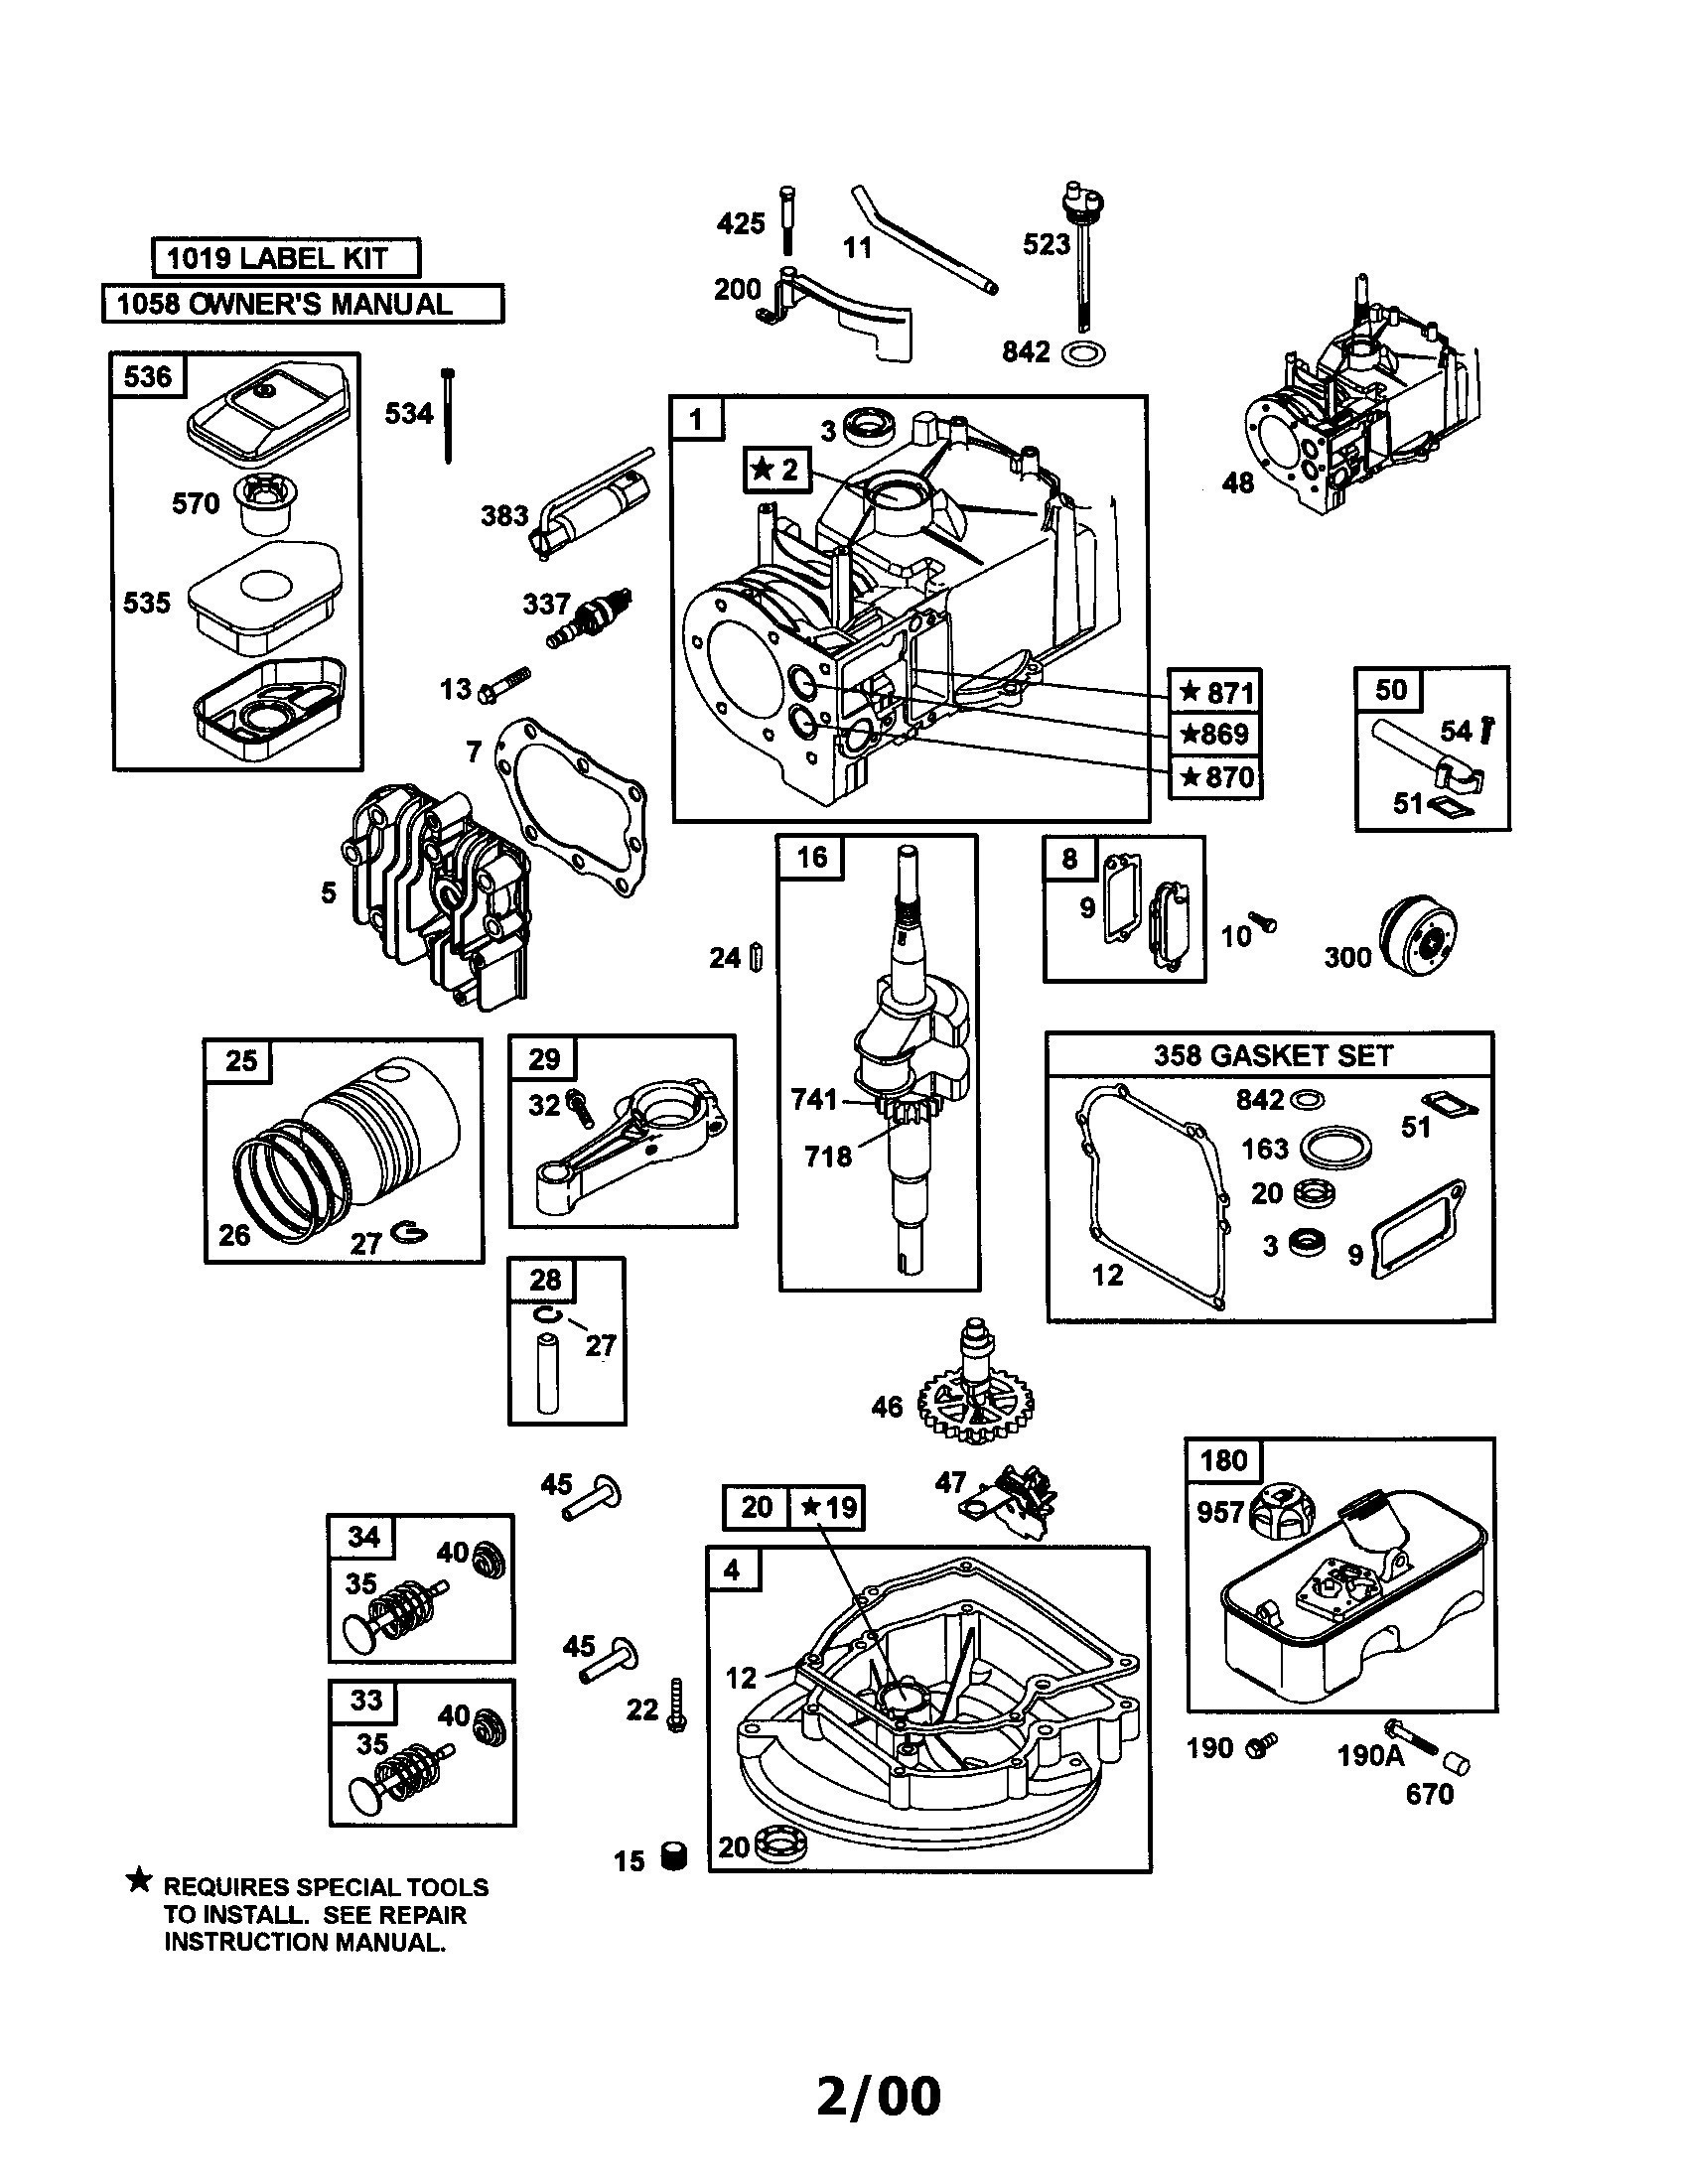 briggs and stratton 6 5 hp engine diagram 2 briggs and stratton wiring diagram  5 hp